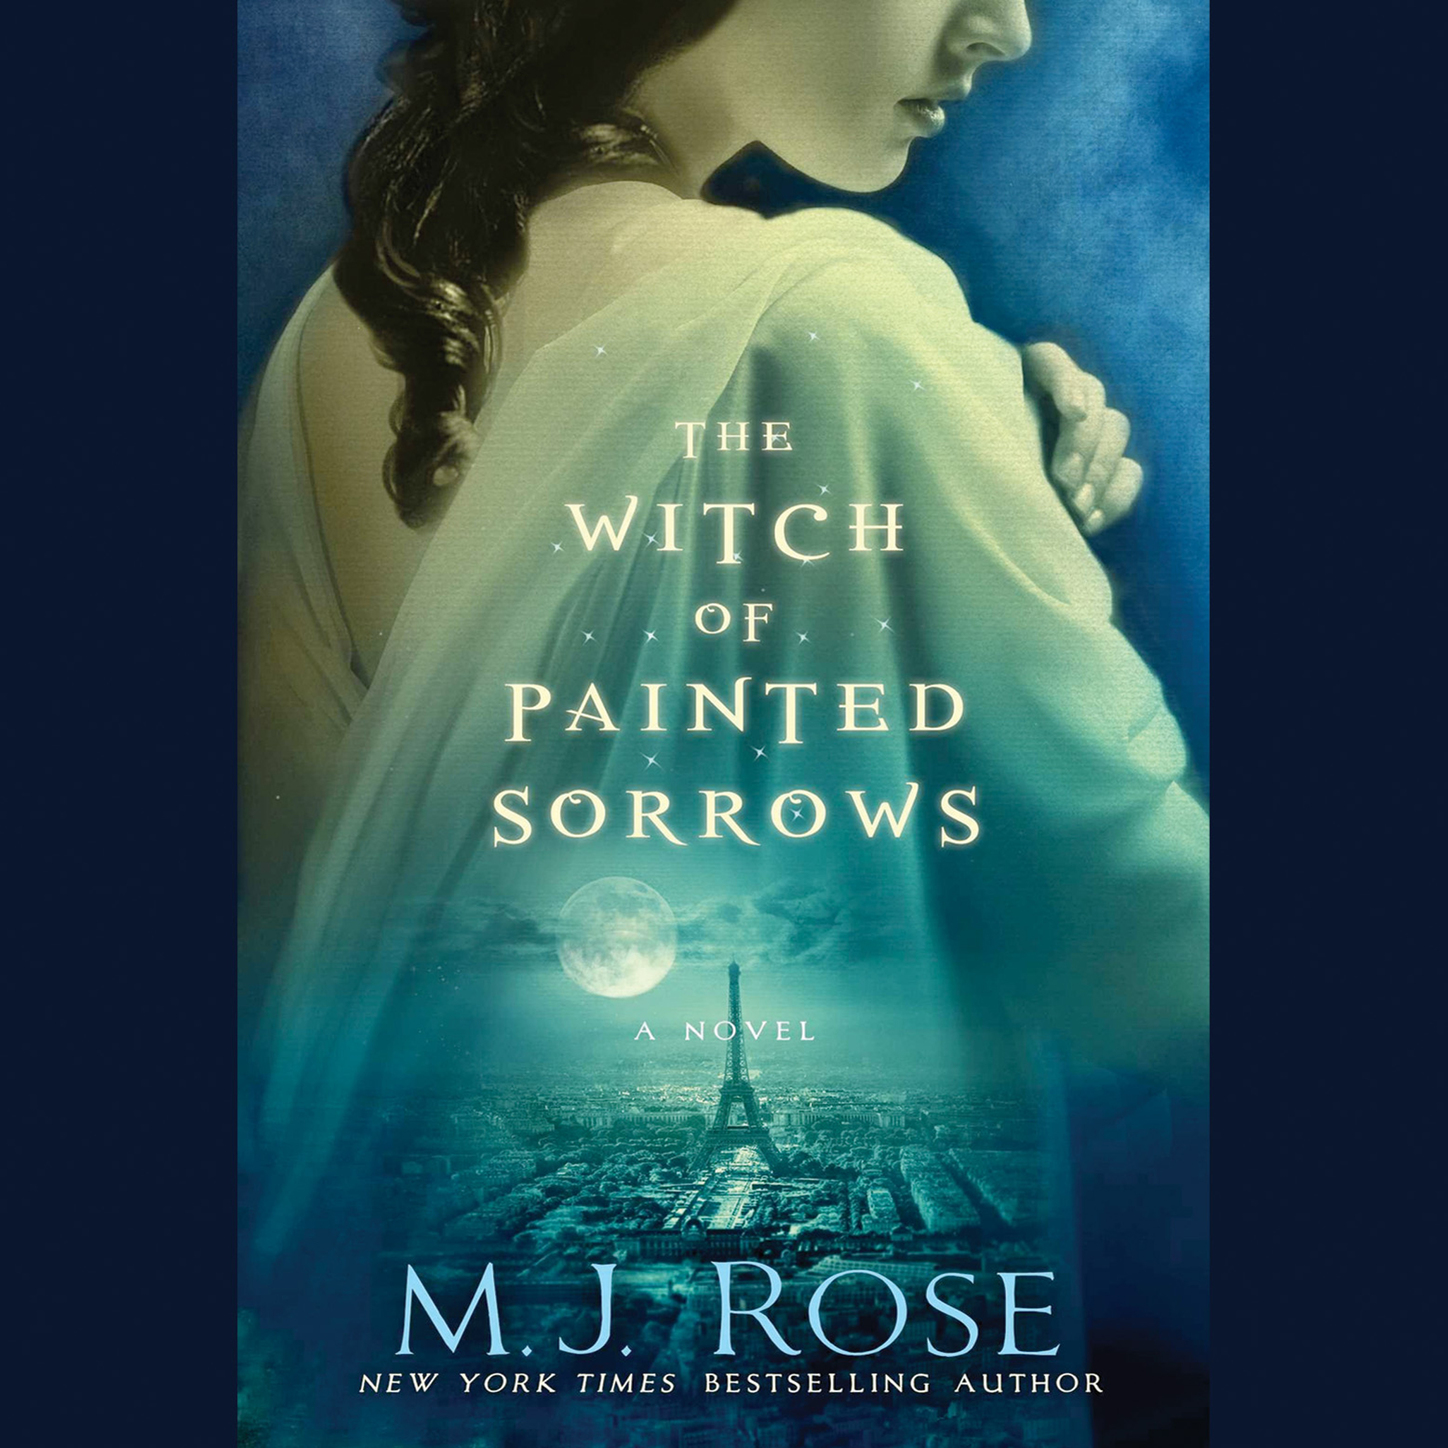 M. J. Rose The Witch of Painted Sorrows - The Daughters of La Lune 1 (Unabridged) the daughters of joy